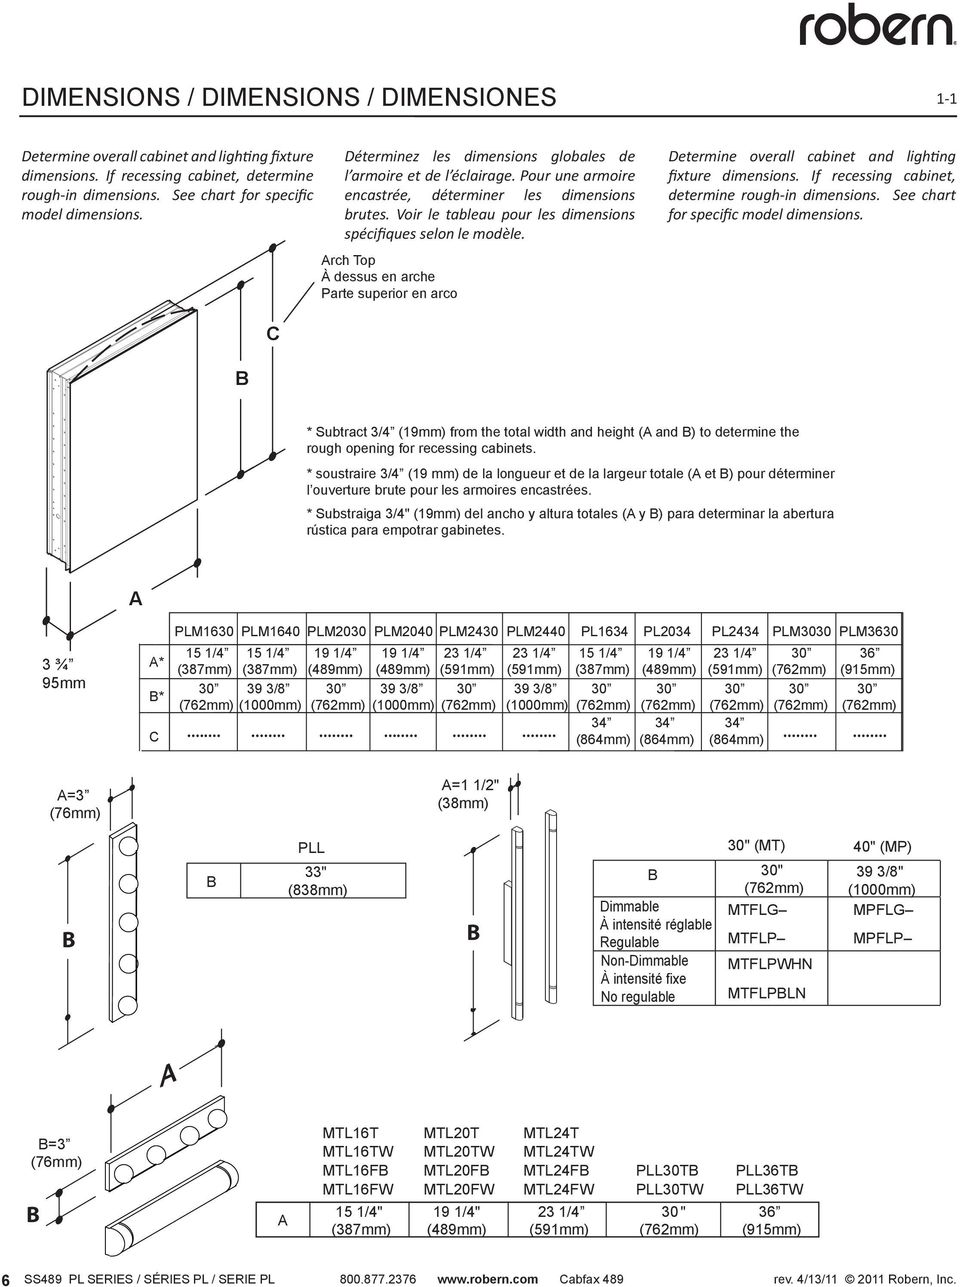 Arch Top À dessus en arche Parte superior en arco Determine overall cabinet and lighting fixture dimensions. If recessing cabinet, determine rough-in dimensions.